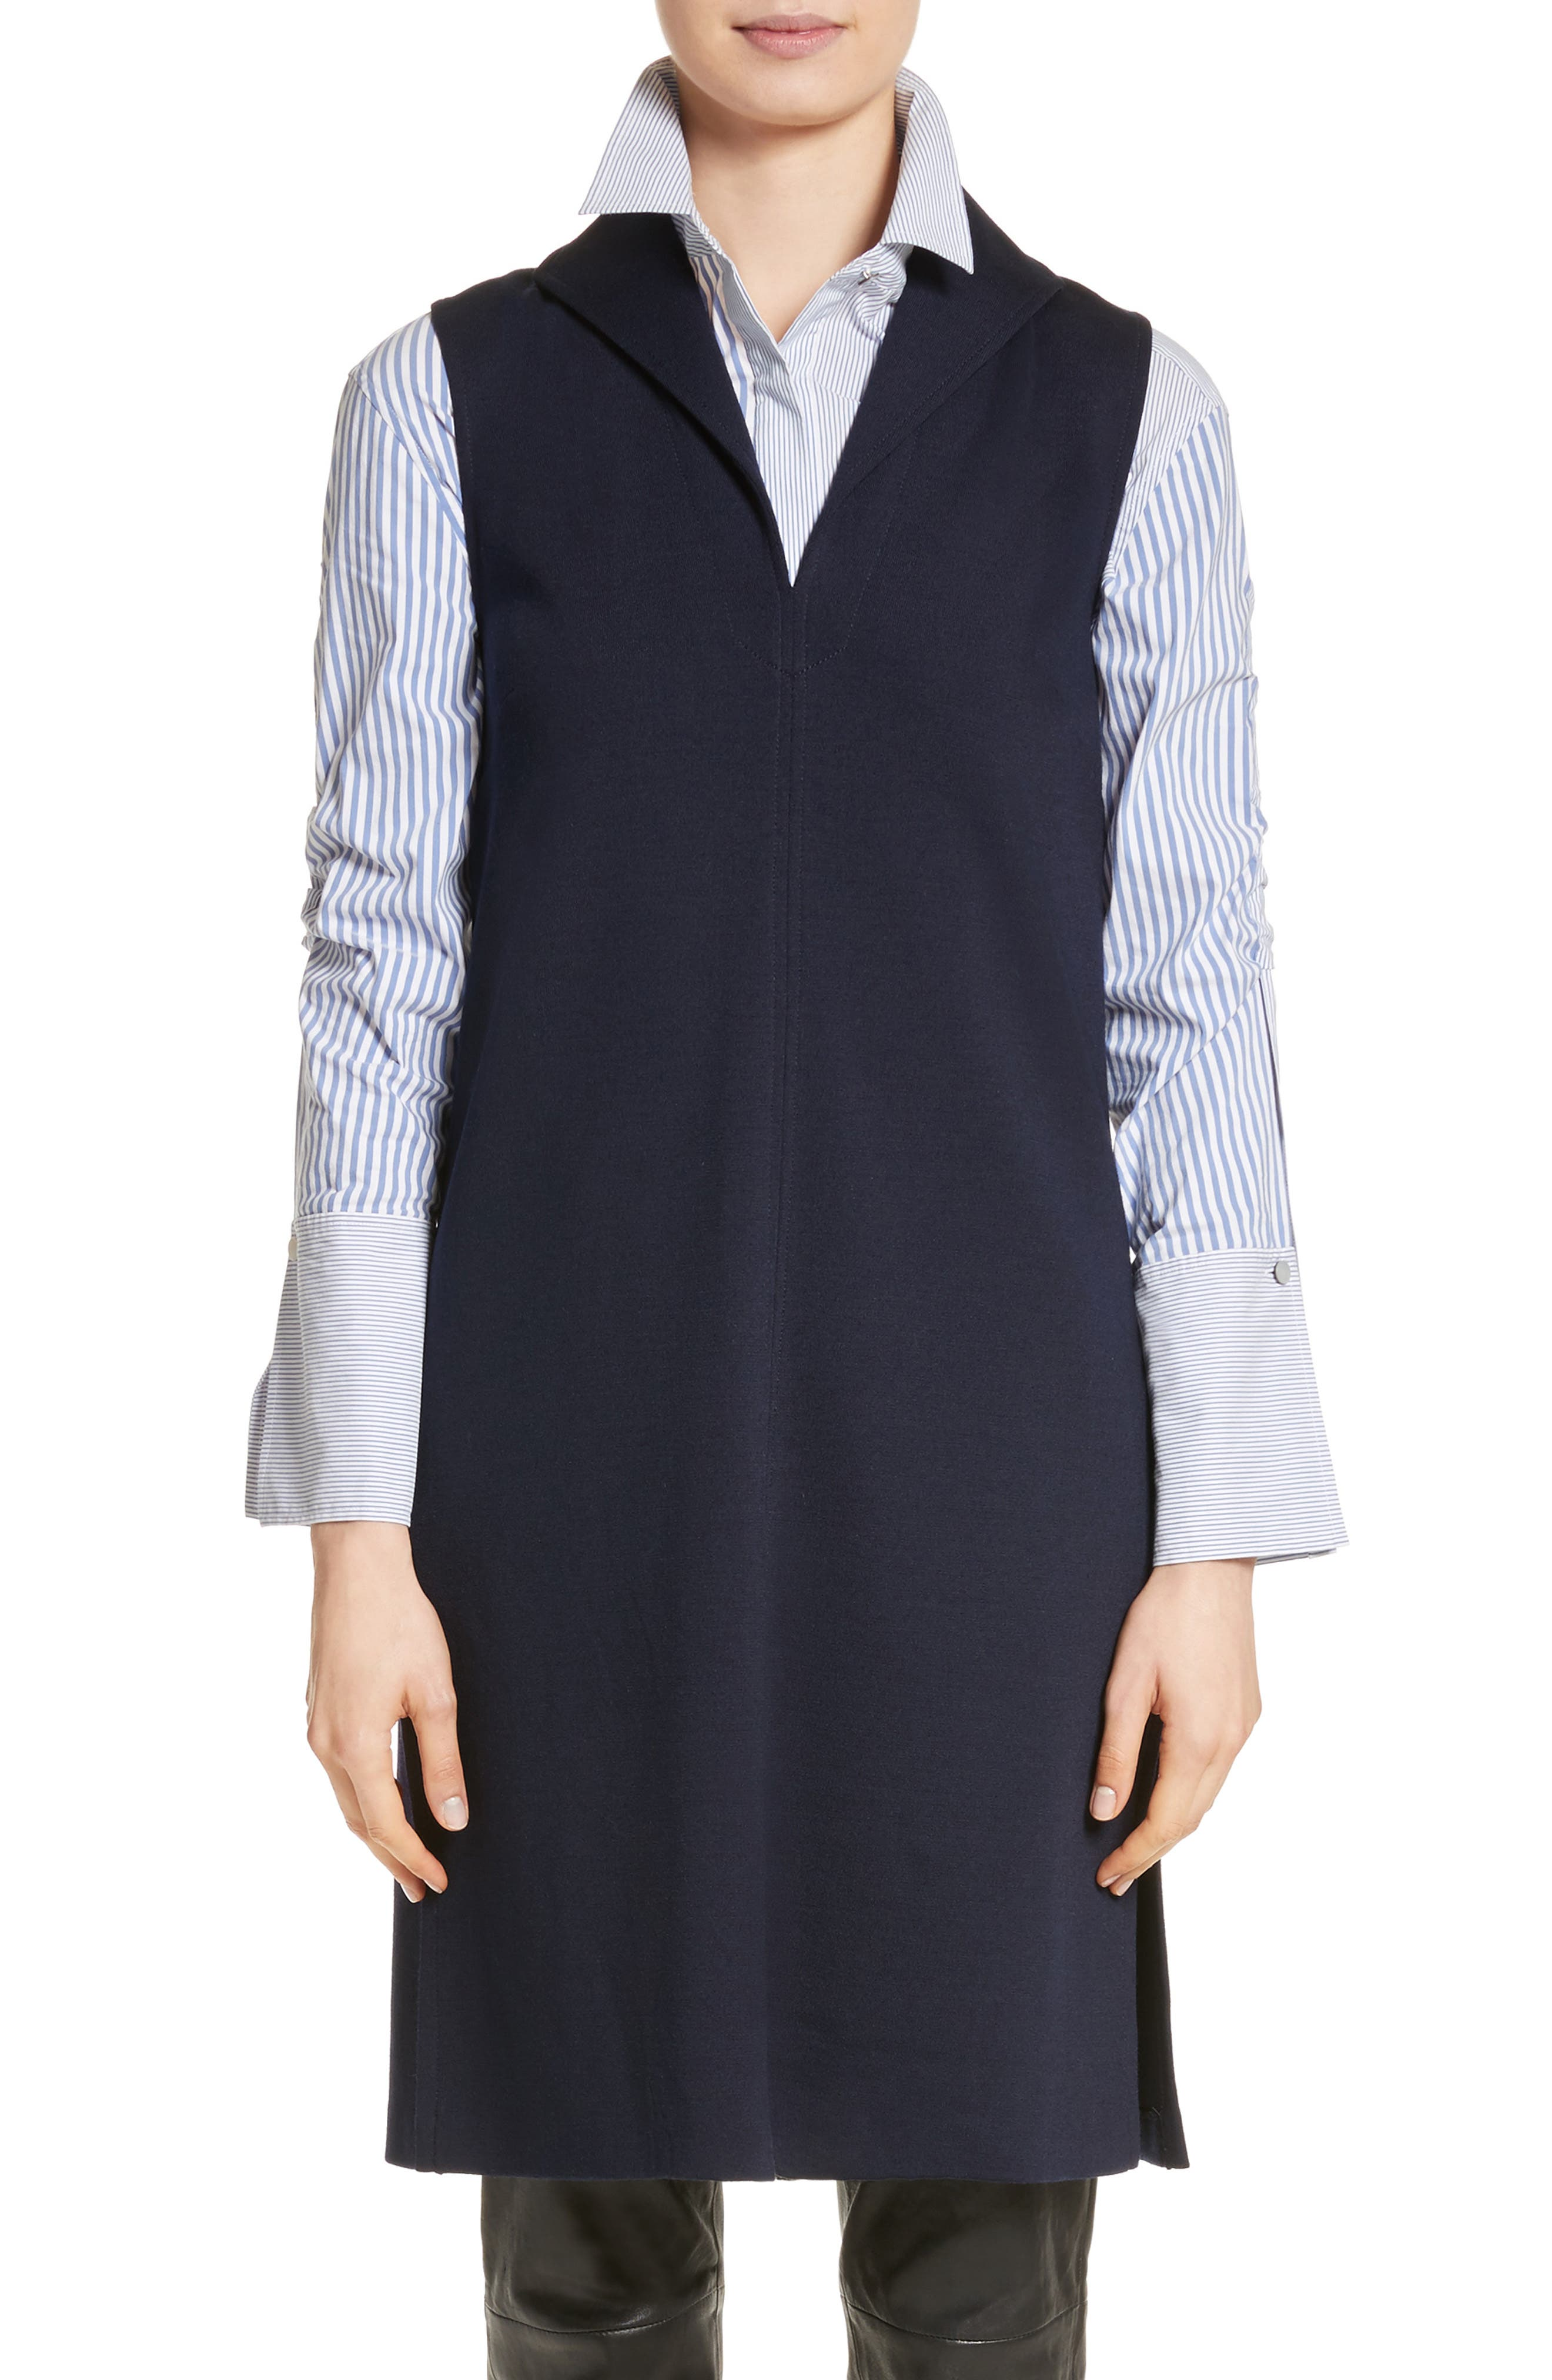 St John Collection Milano Knit Collared Tunic,                         Main,                         color, 410